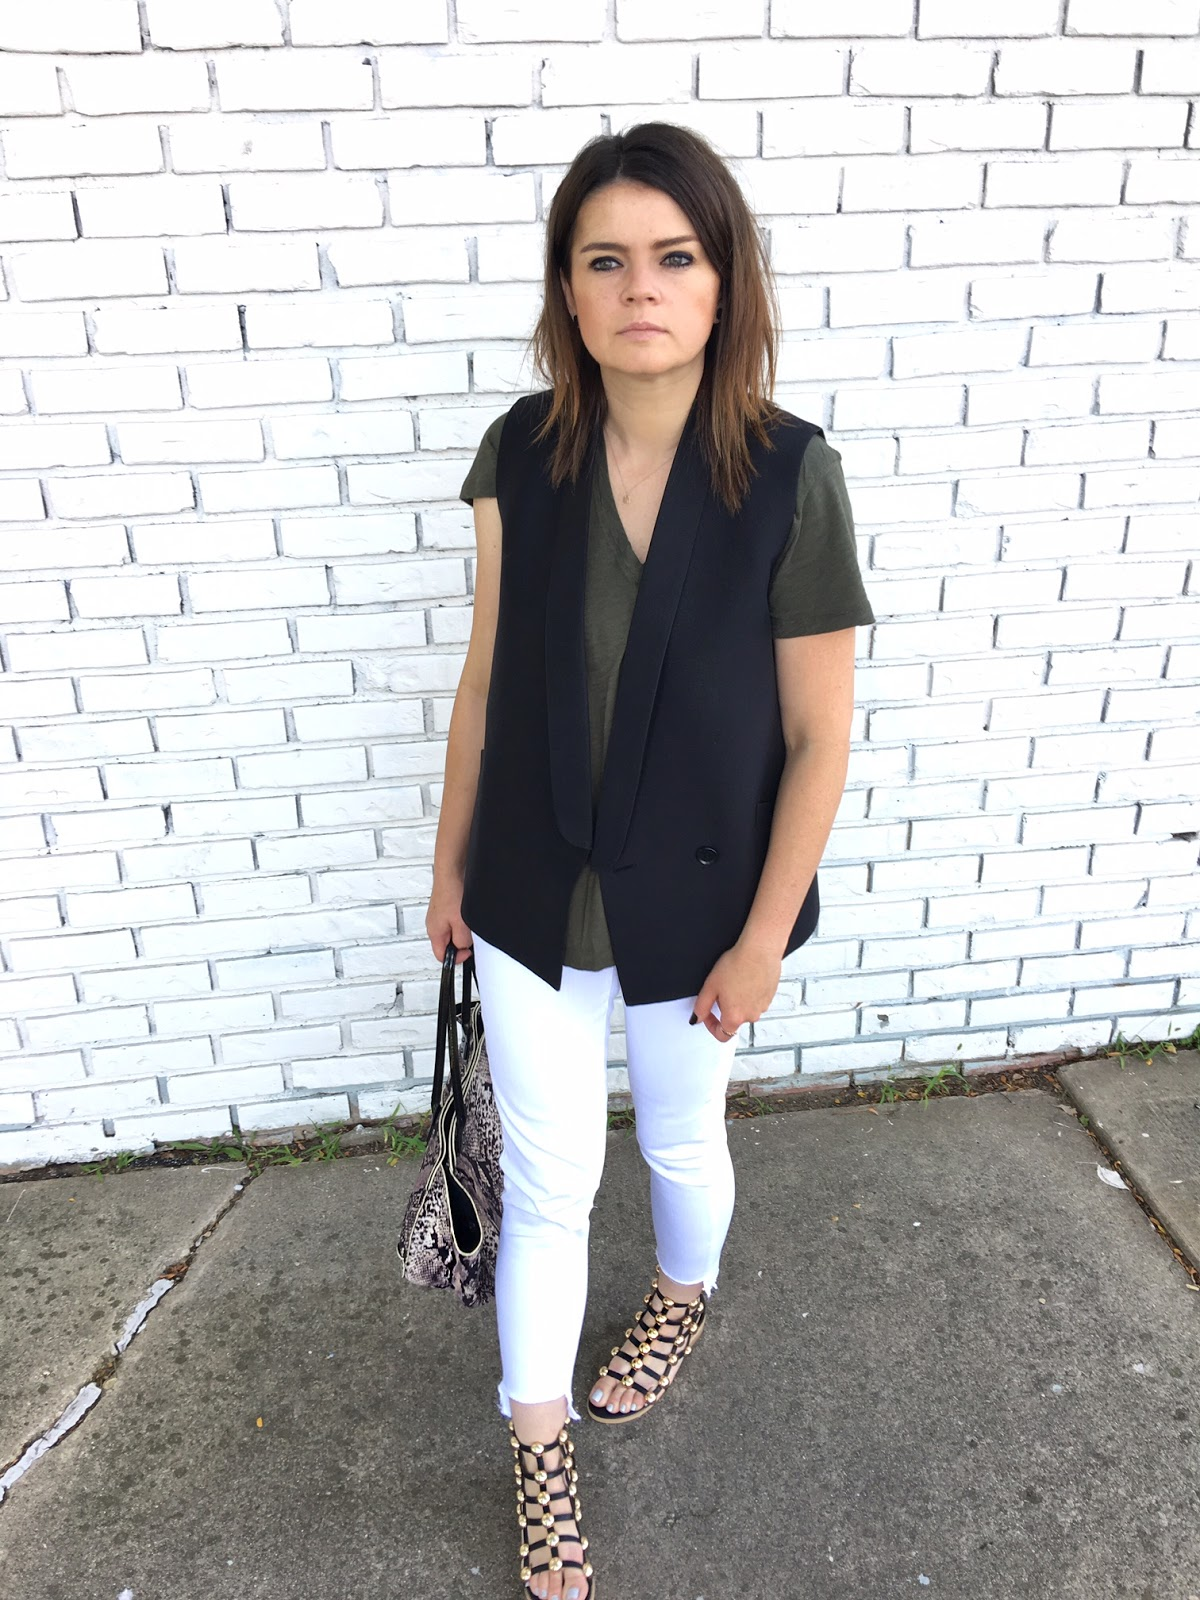 White jeans & edgy sandals